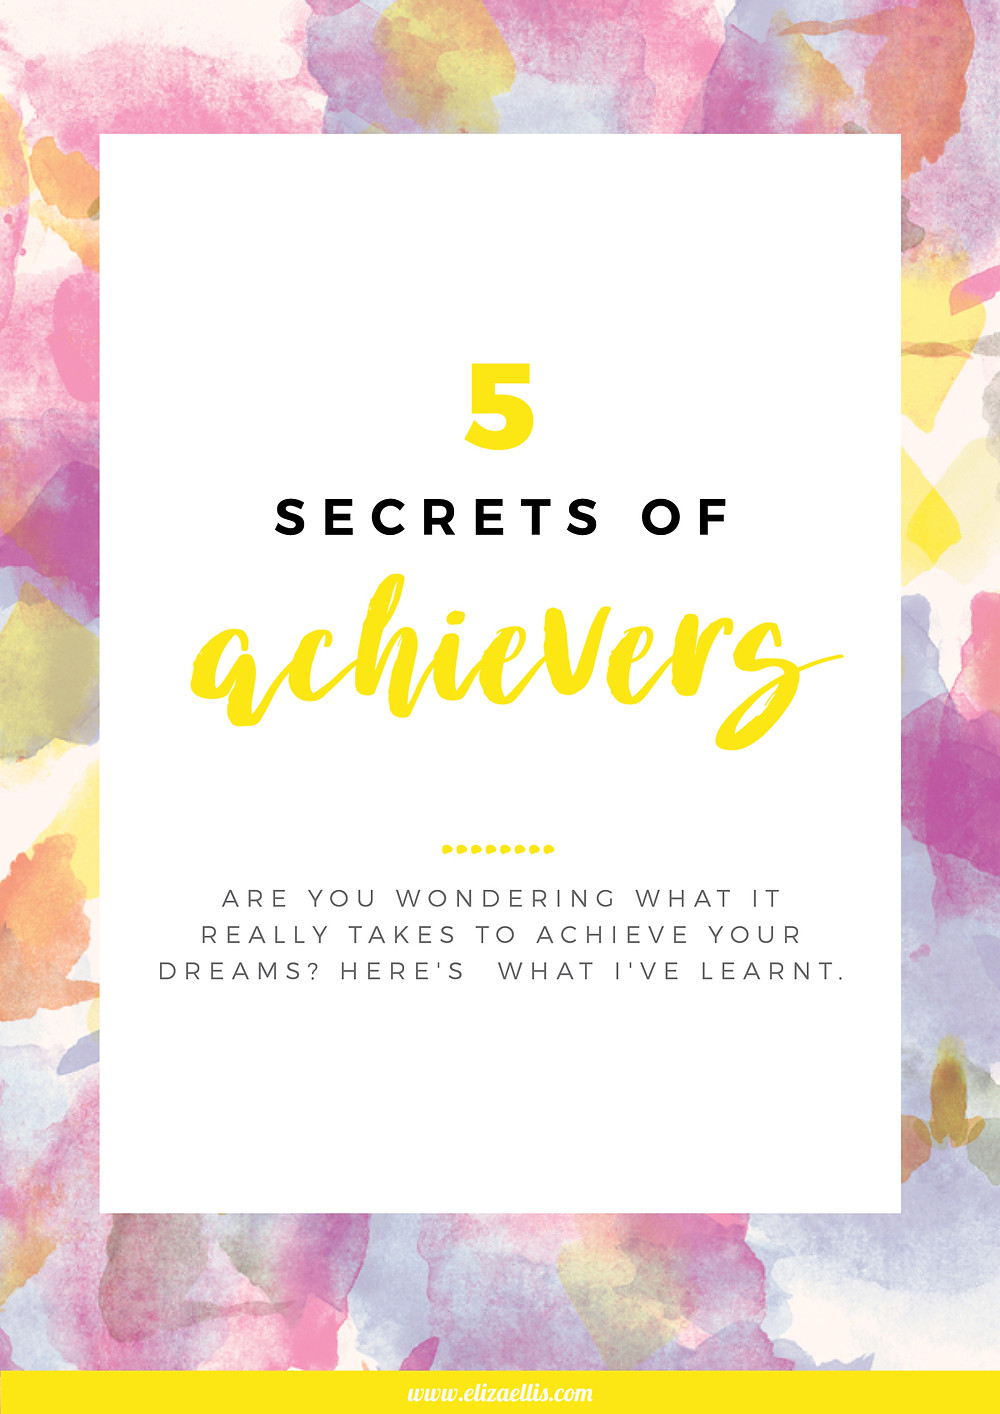 The 5 Secrets of Achievers // Eliza Ellis // achievement, achieve goals, achievement quotes, goals, goal setting, projects, goal setting quotes, goal quotes, goal setting planner, how to set goals, persistence, determination, don't stop trying, never give up, how to set goals and achieve them, goal ideas, goal motivation, achieve your dreams, goals for 2020, goal setting 2020